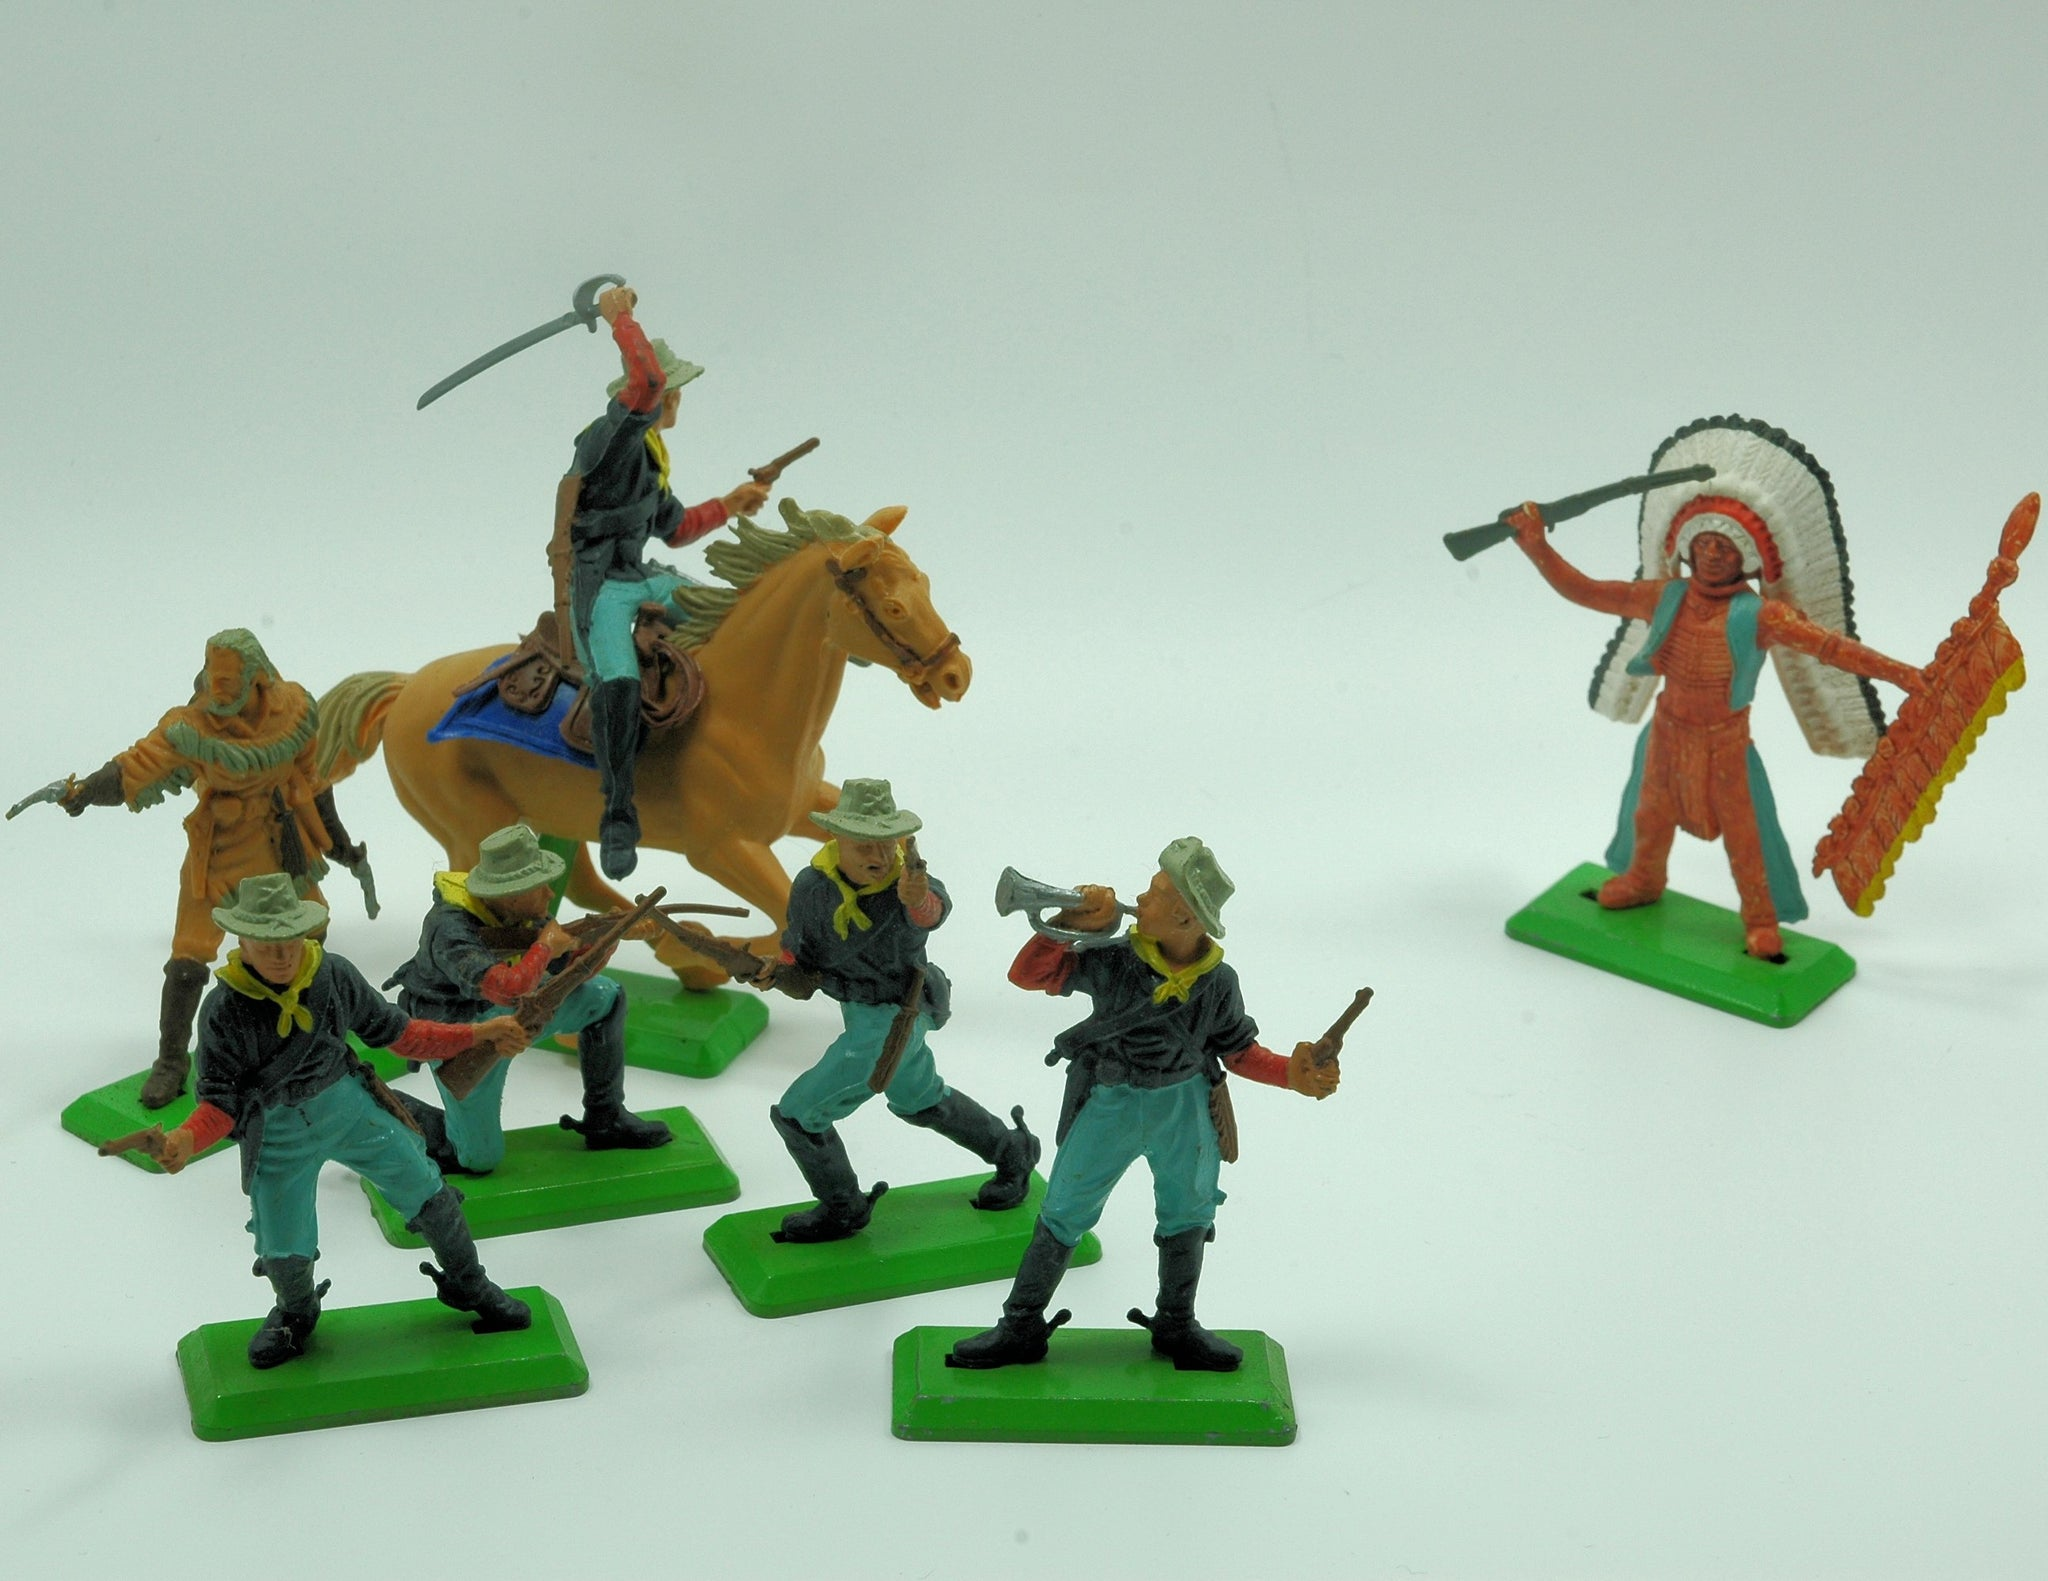 Vintage Action Figures Cowboys and Indians by Deetail (c.1971)